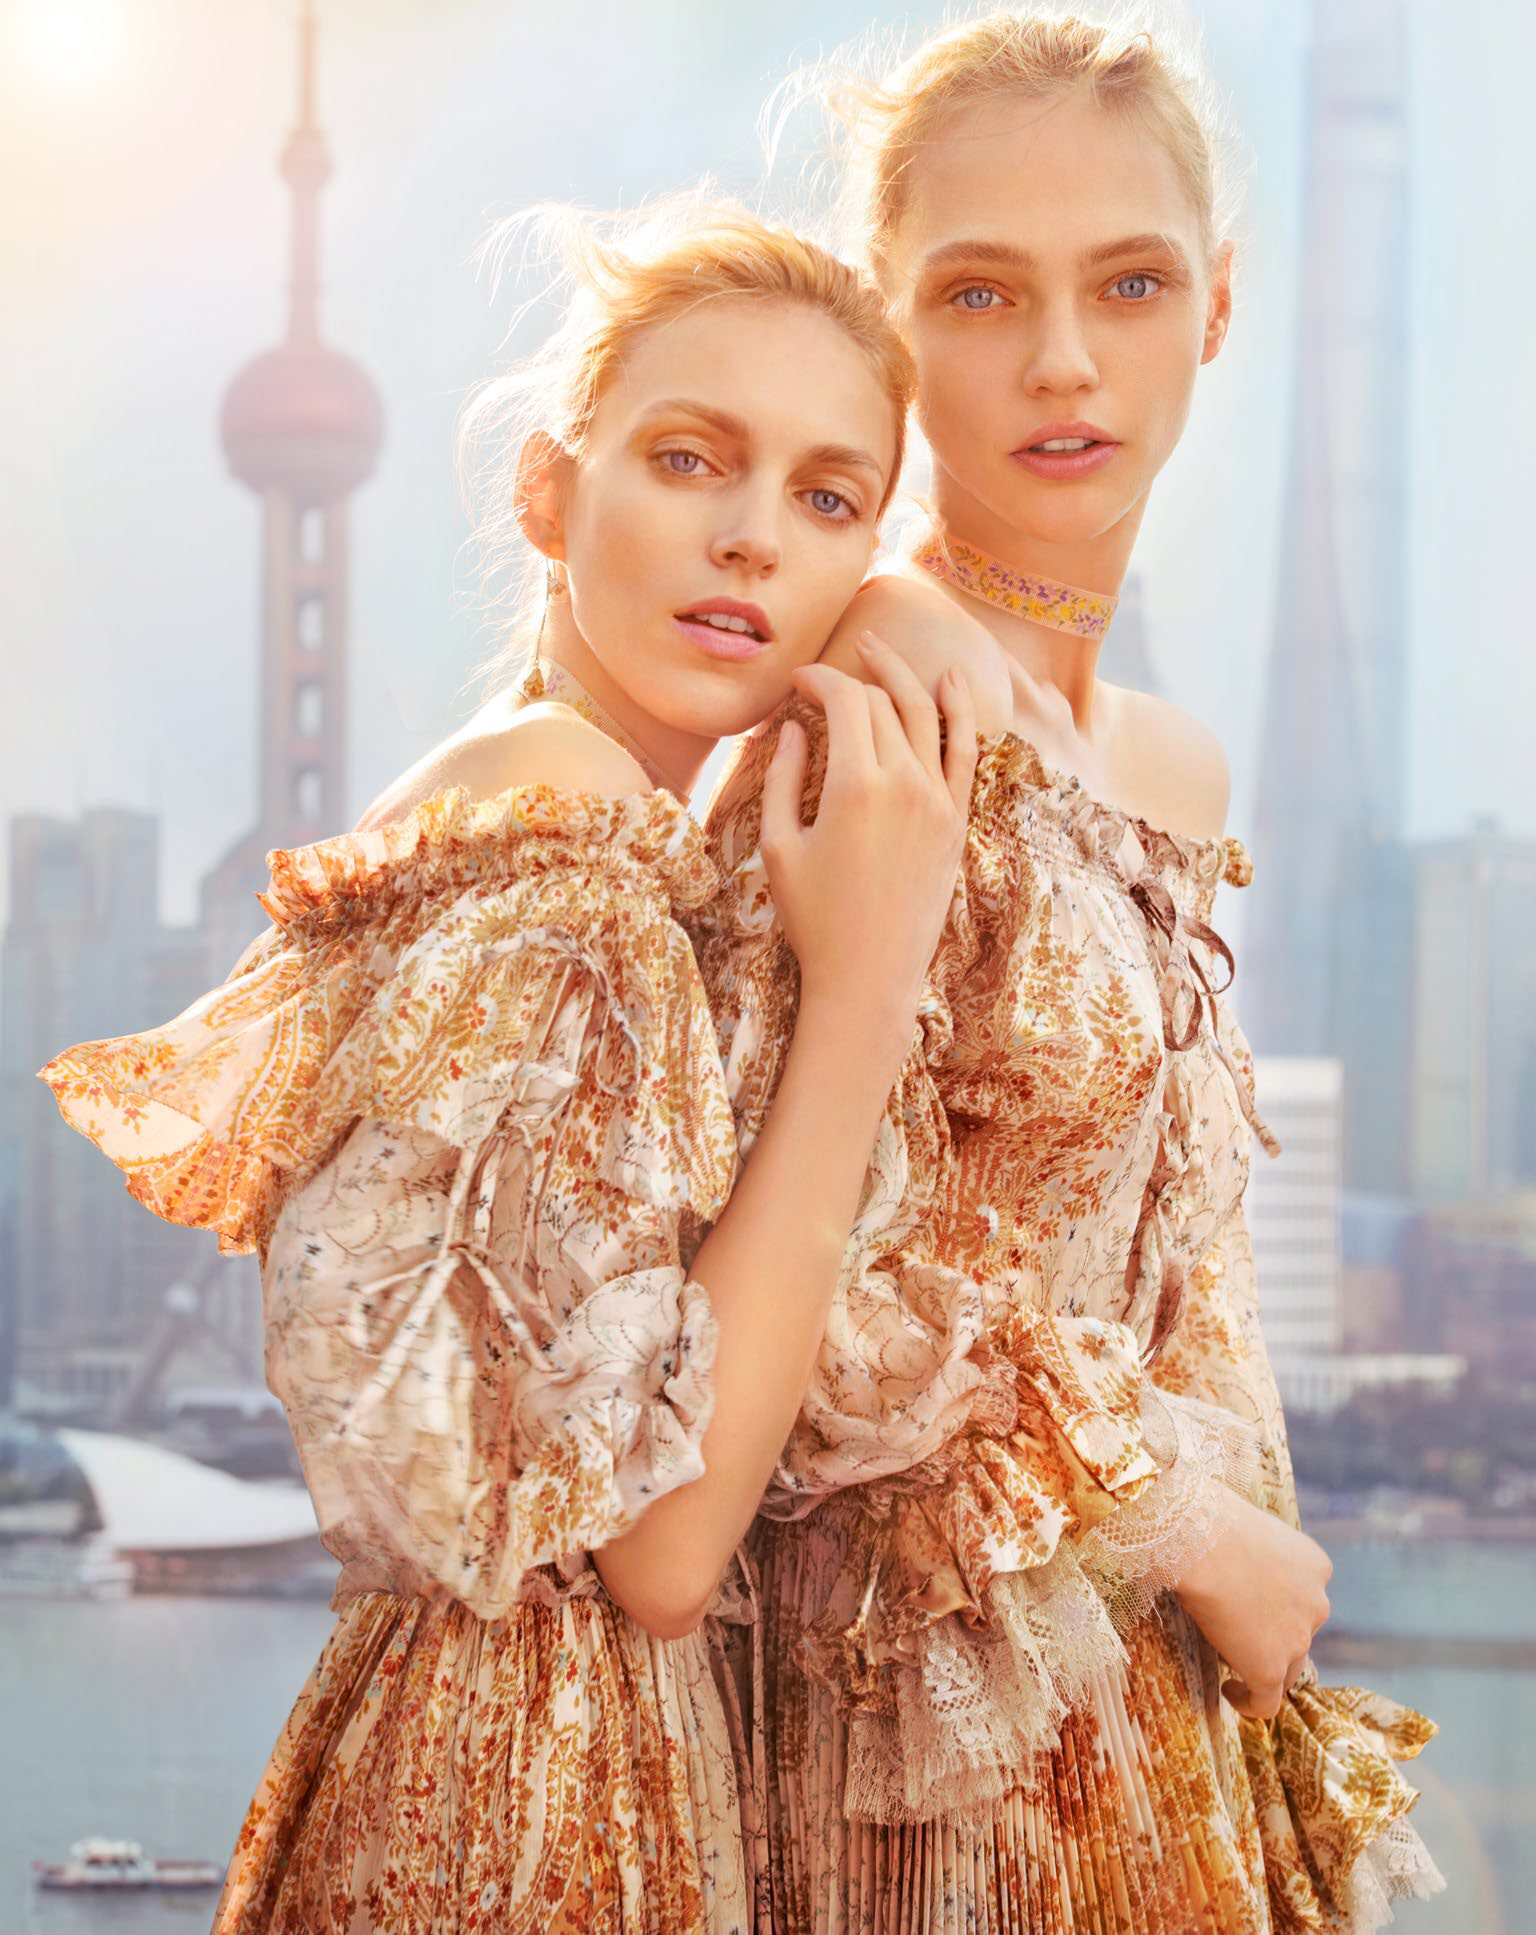 vogue_china-february_2016-anja_rubik-sasha_pivovarova-by-chen-man-00b.jpg